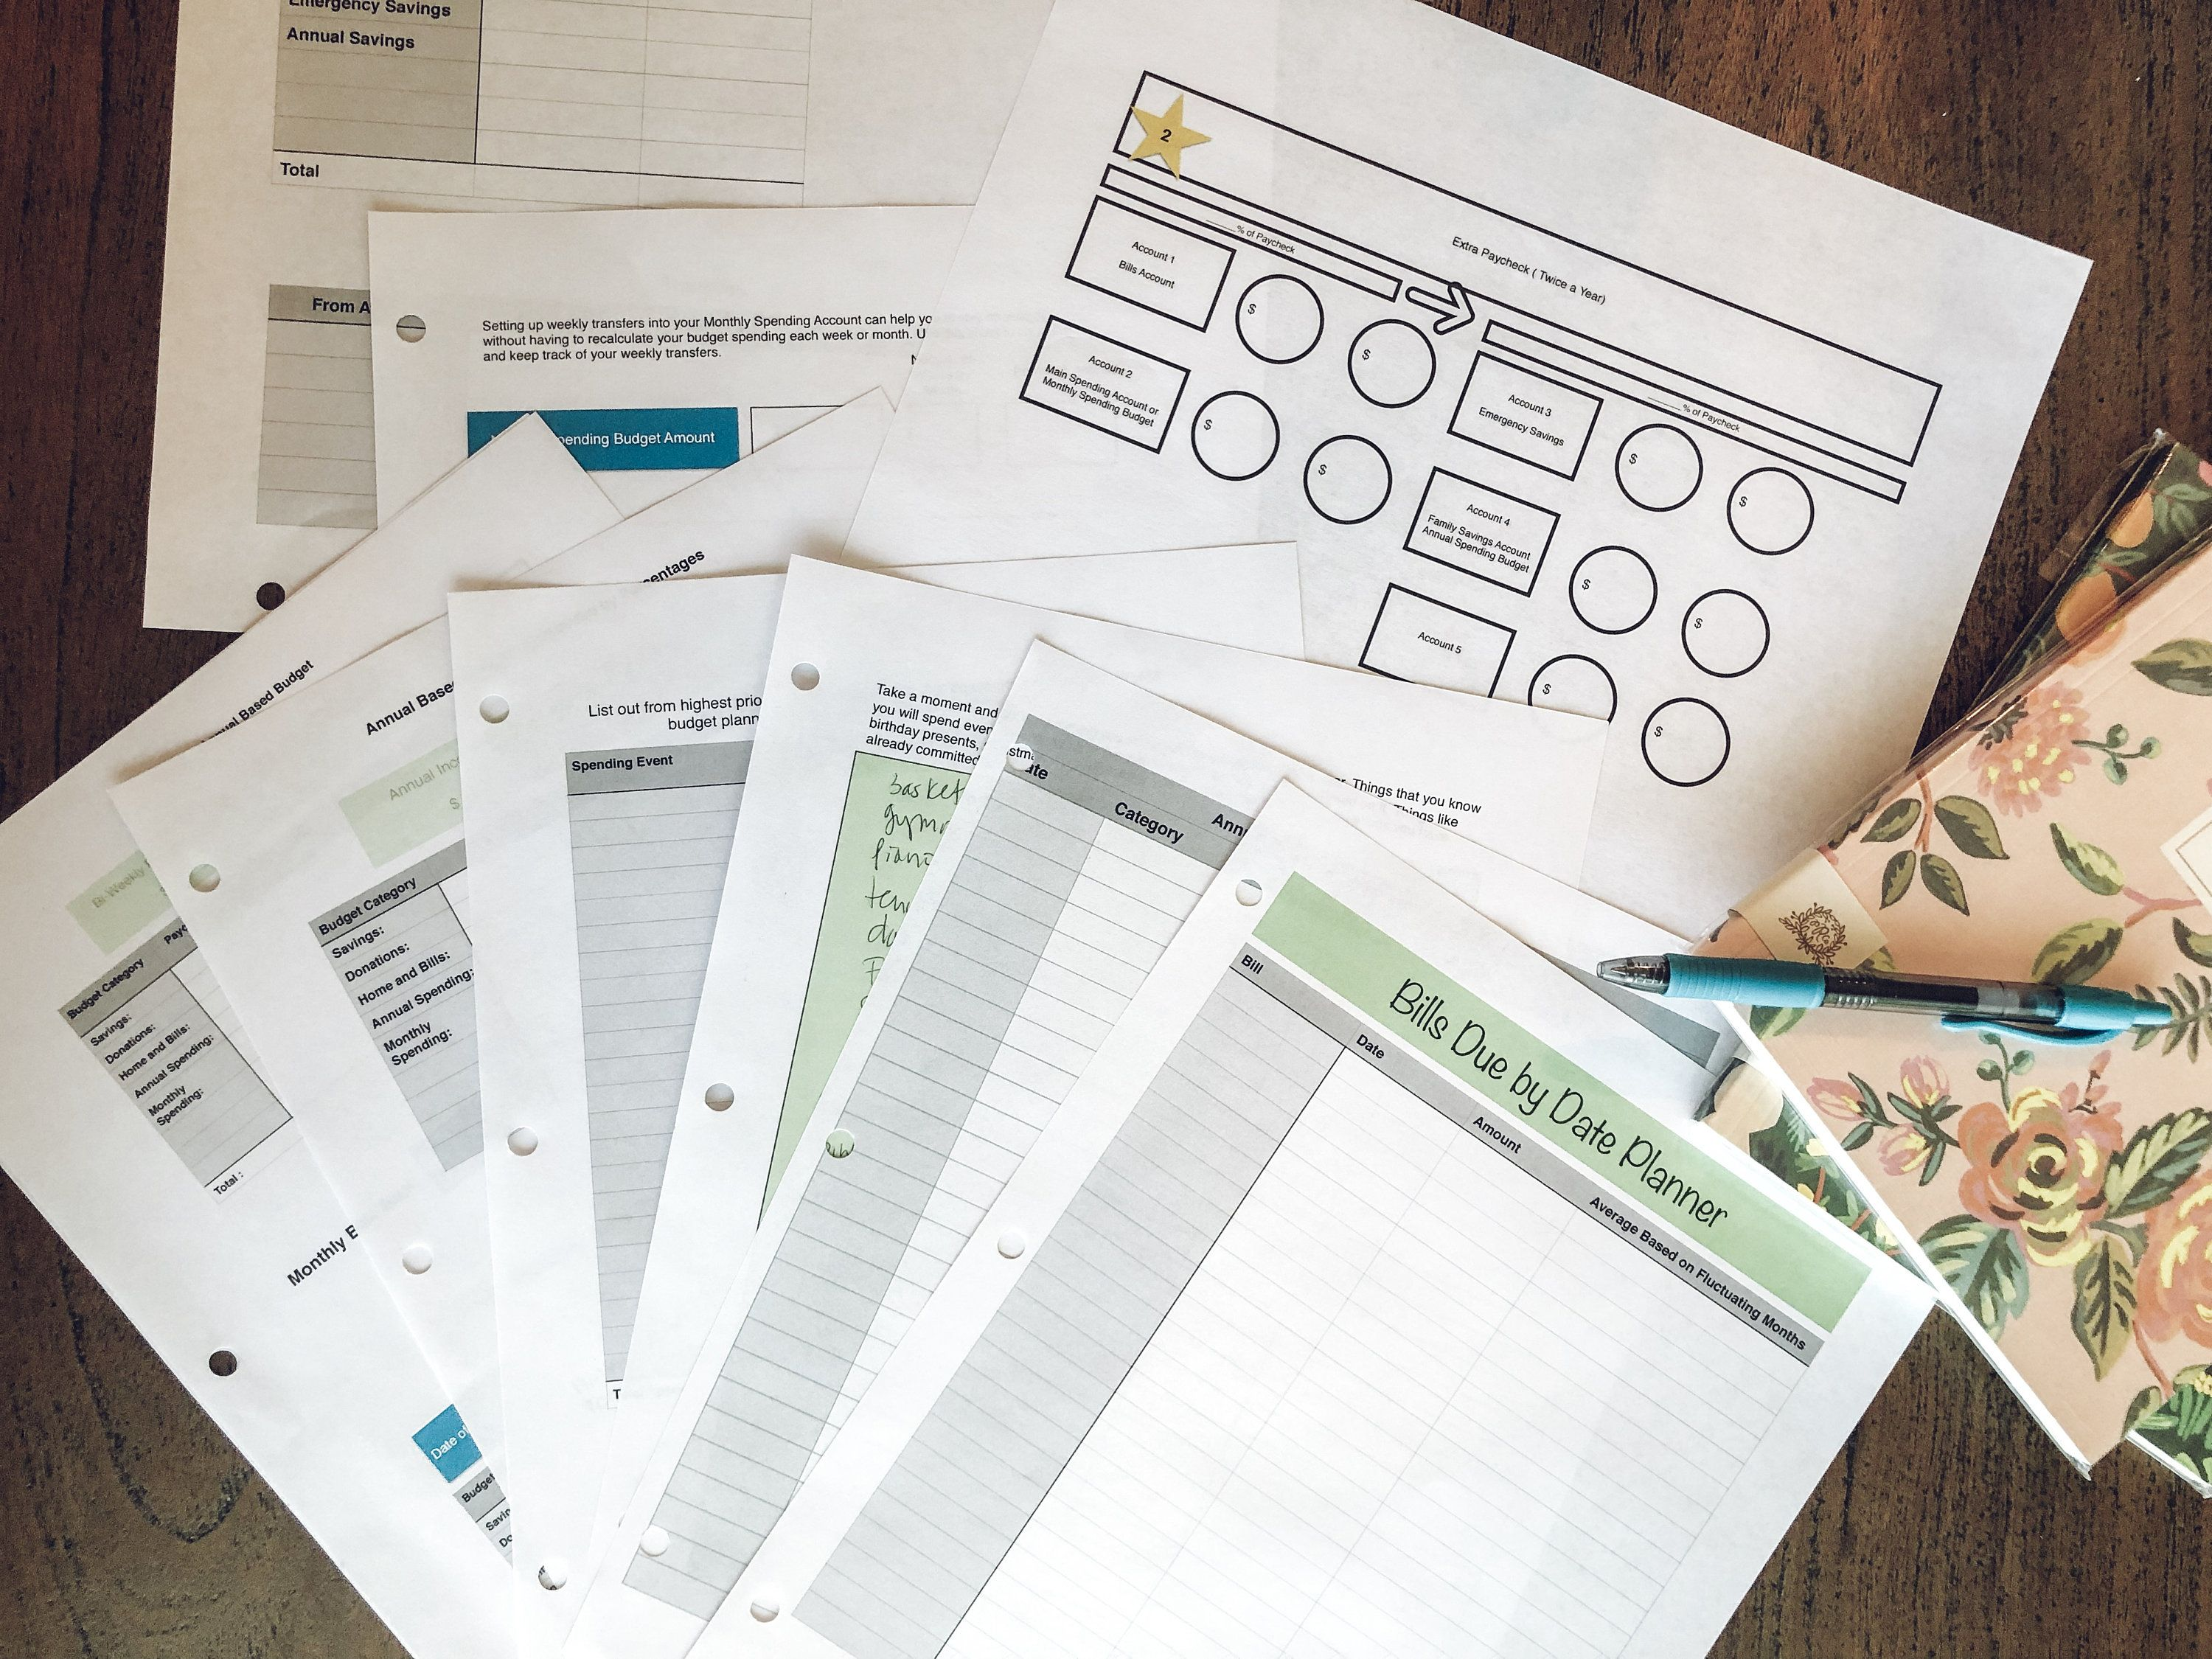 Bi Weekly Paycheck Monthly Budget Printout Budgeting